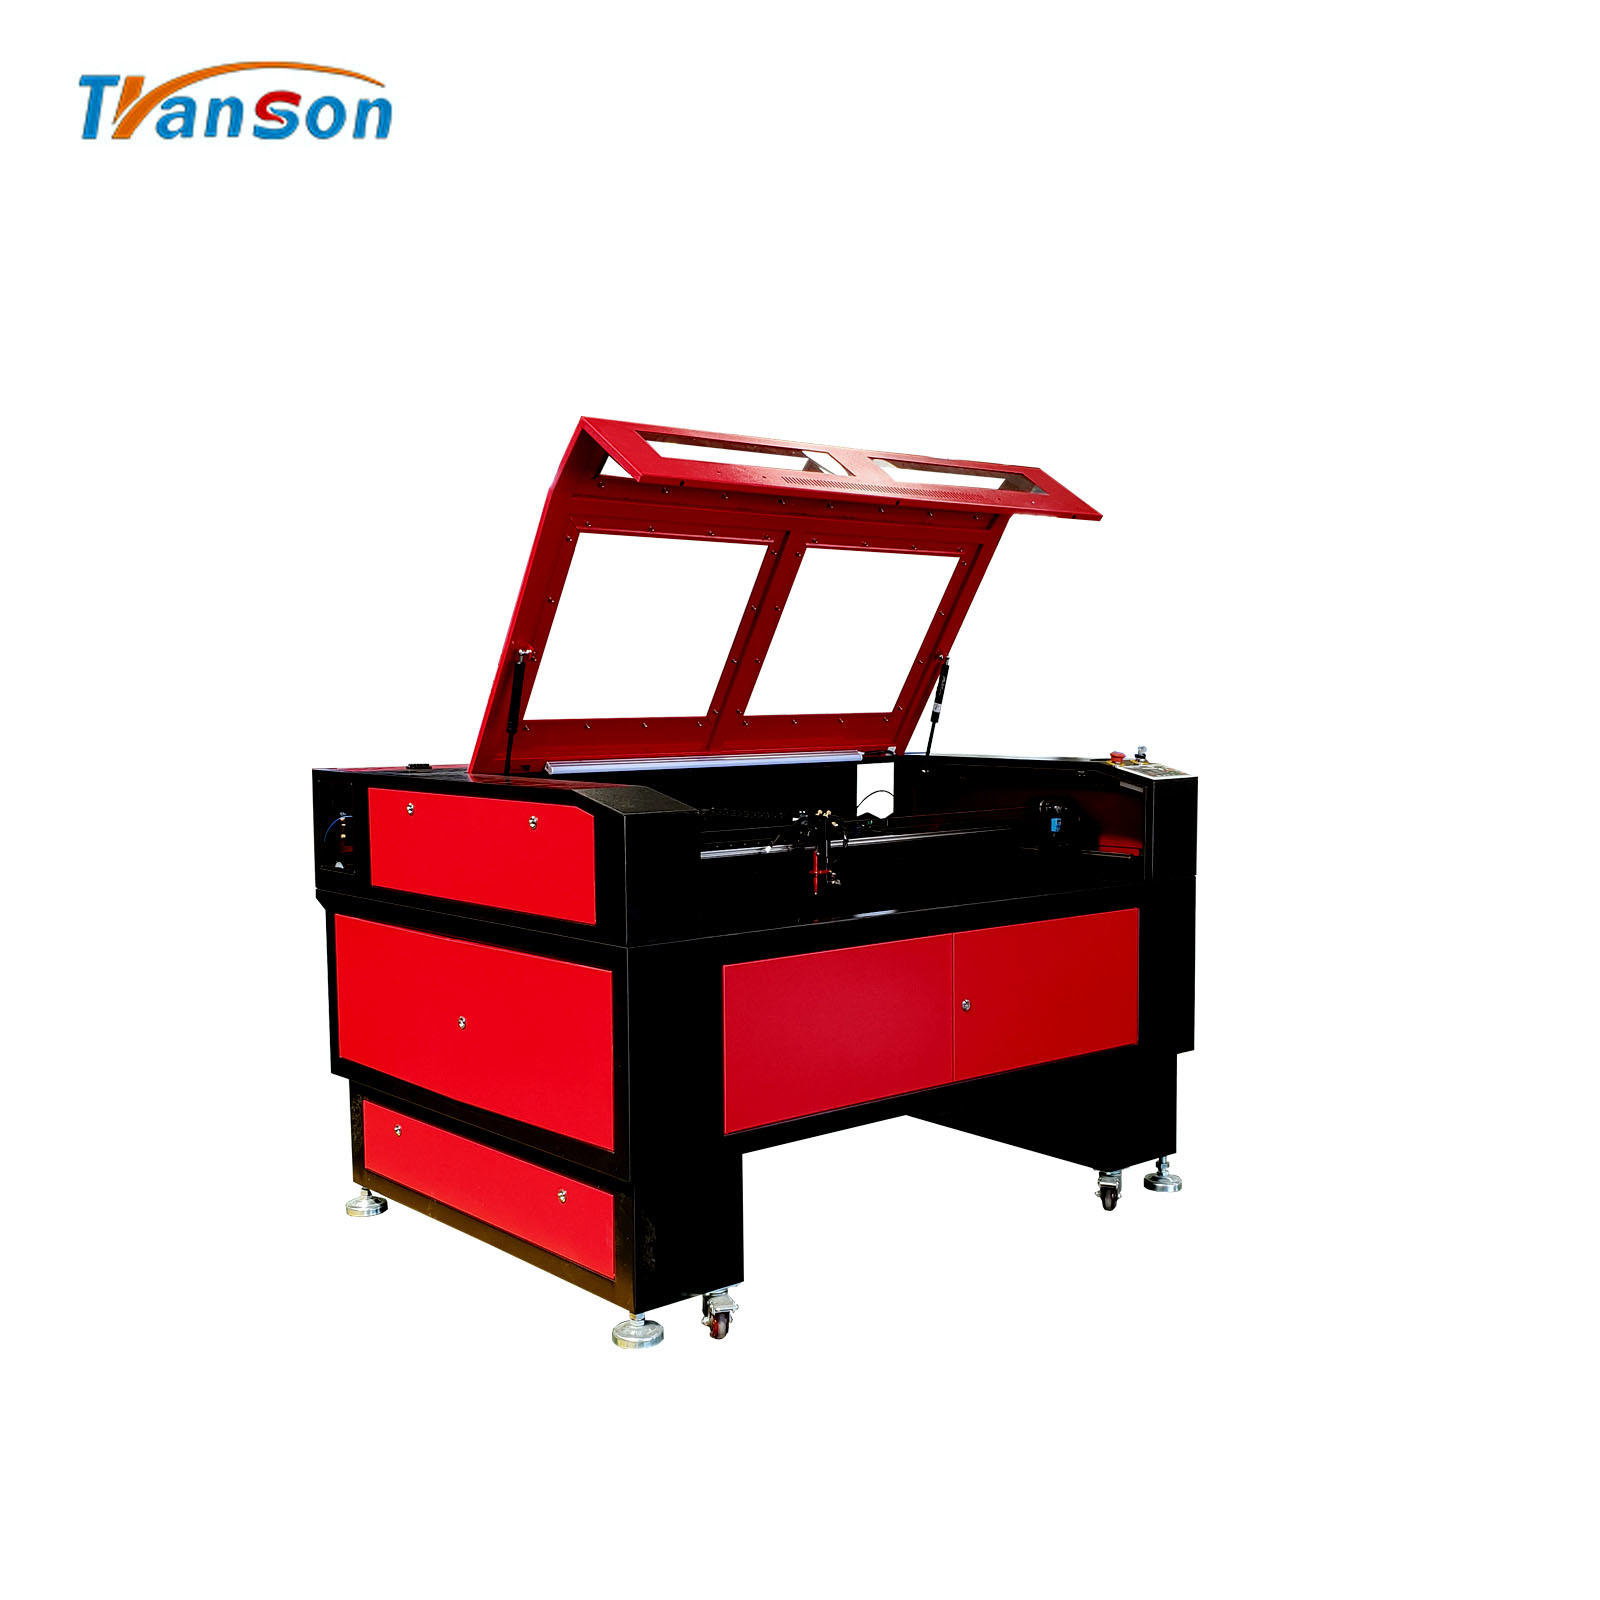 Transon 90W 1290 CO2 laser engraving cutting machine